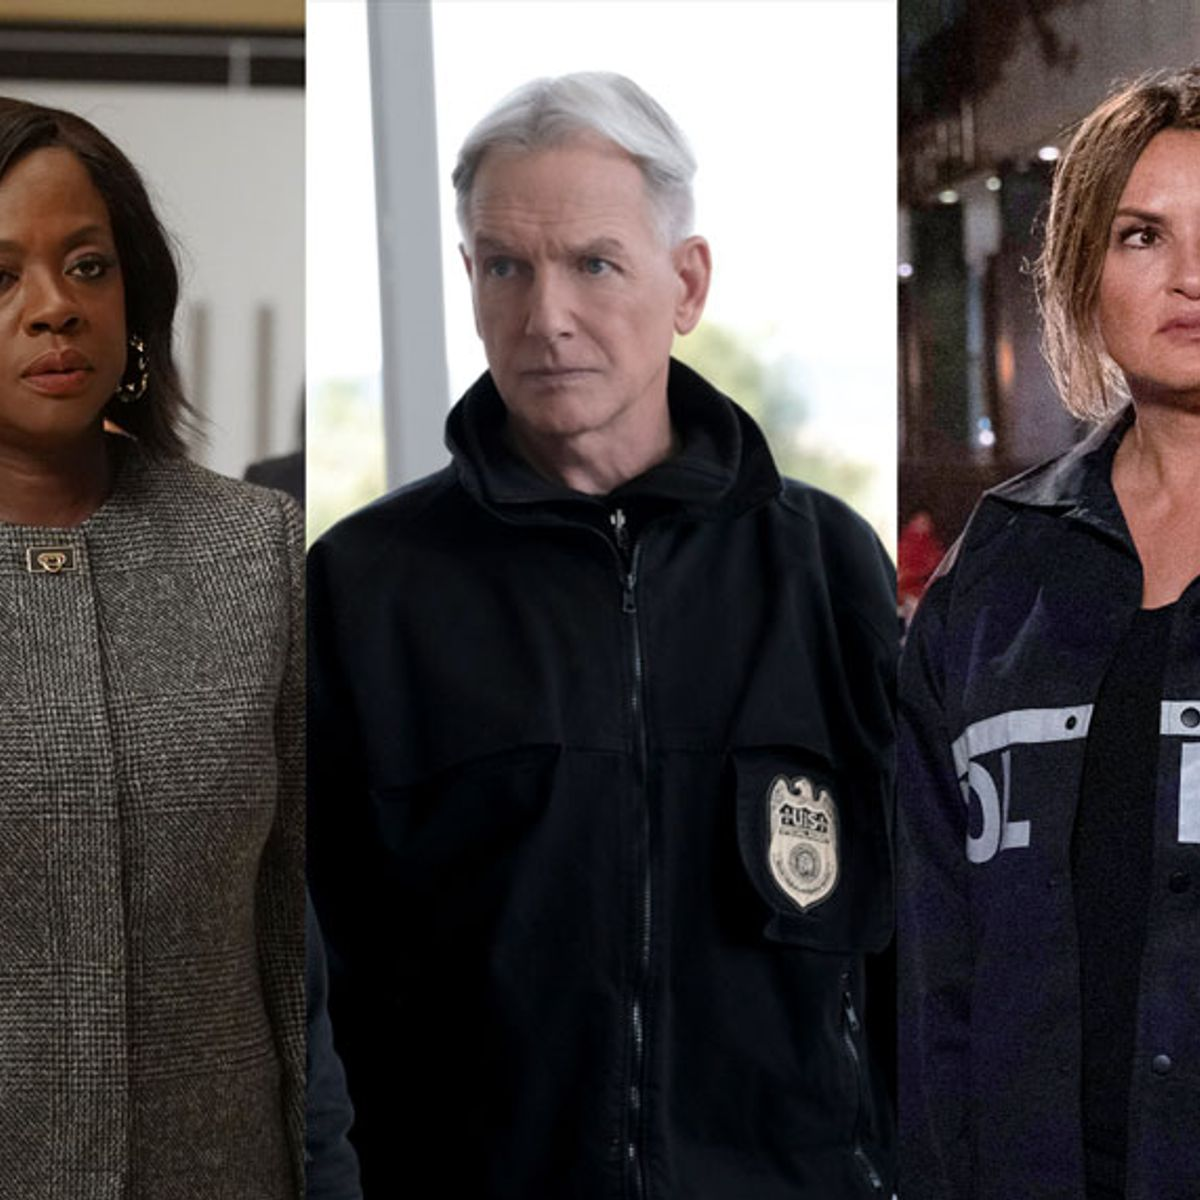 Are crime shows slowing justice reform? Here's the insidious storytelling bias miseducating viewers